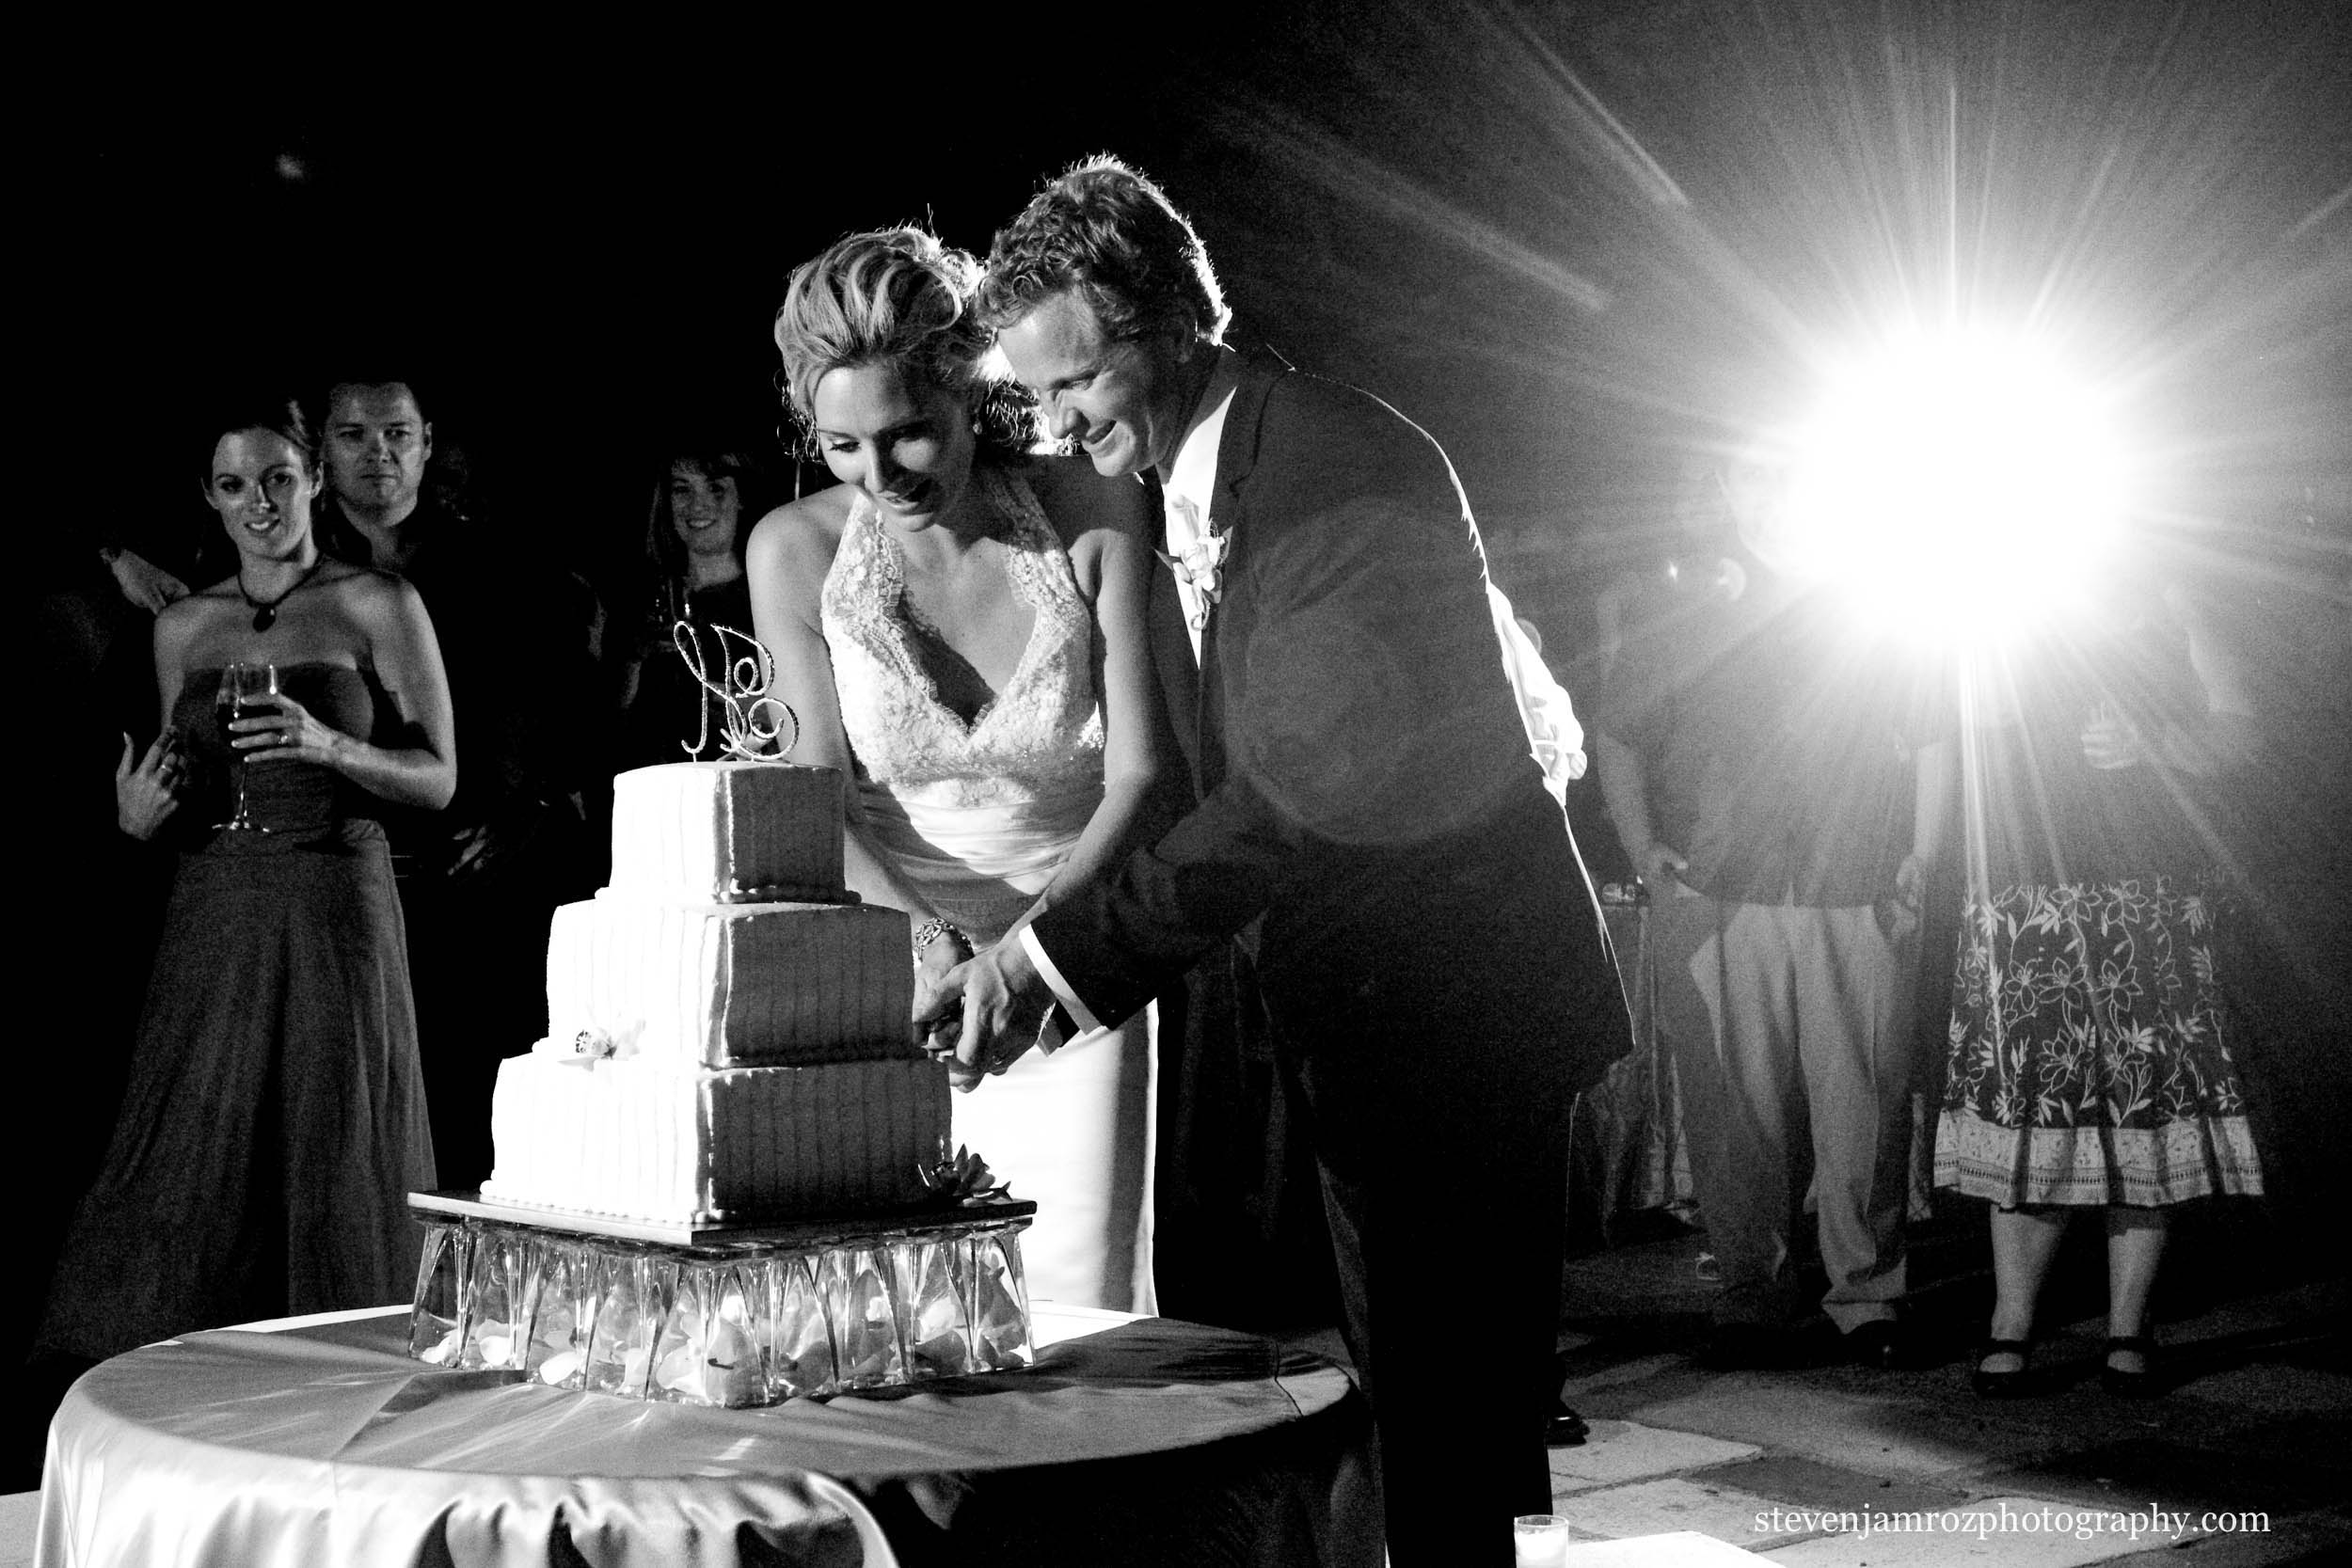 cutting-cake-raleigh-wedding-steven-jamroz-photography-0475.jpg